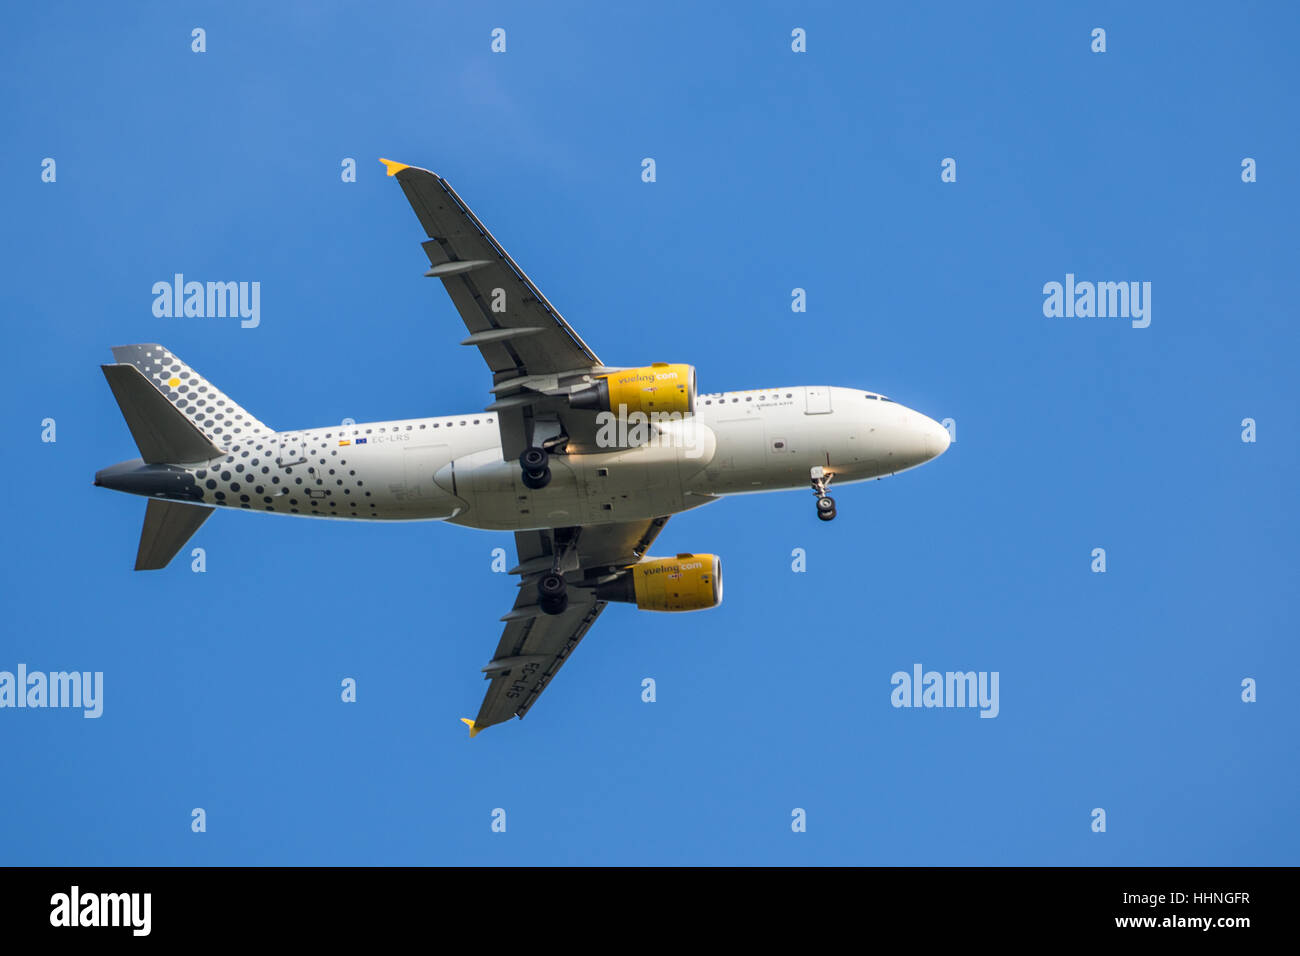 Vueling Airbus A319 Airplane EC-LRS Near Gatwick - Stock Image